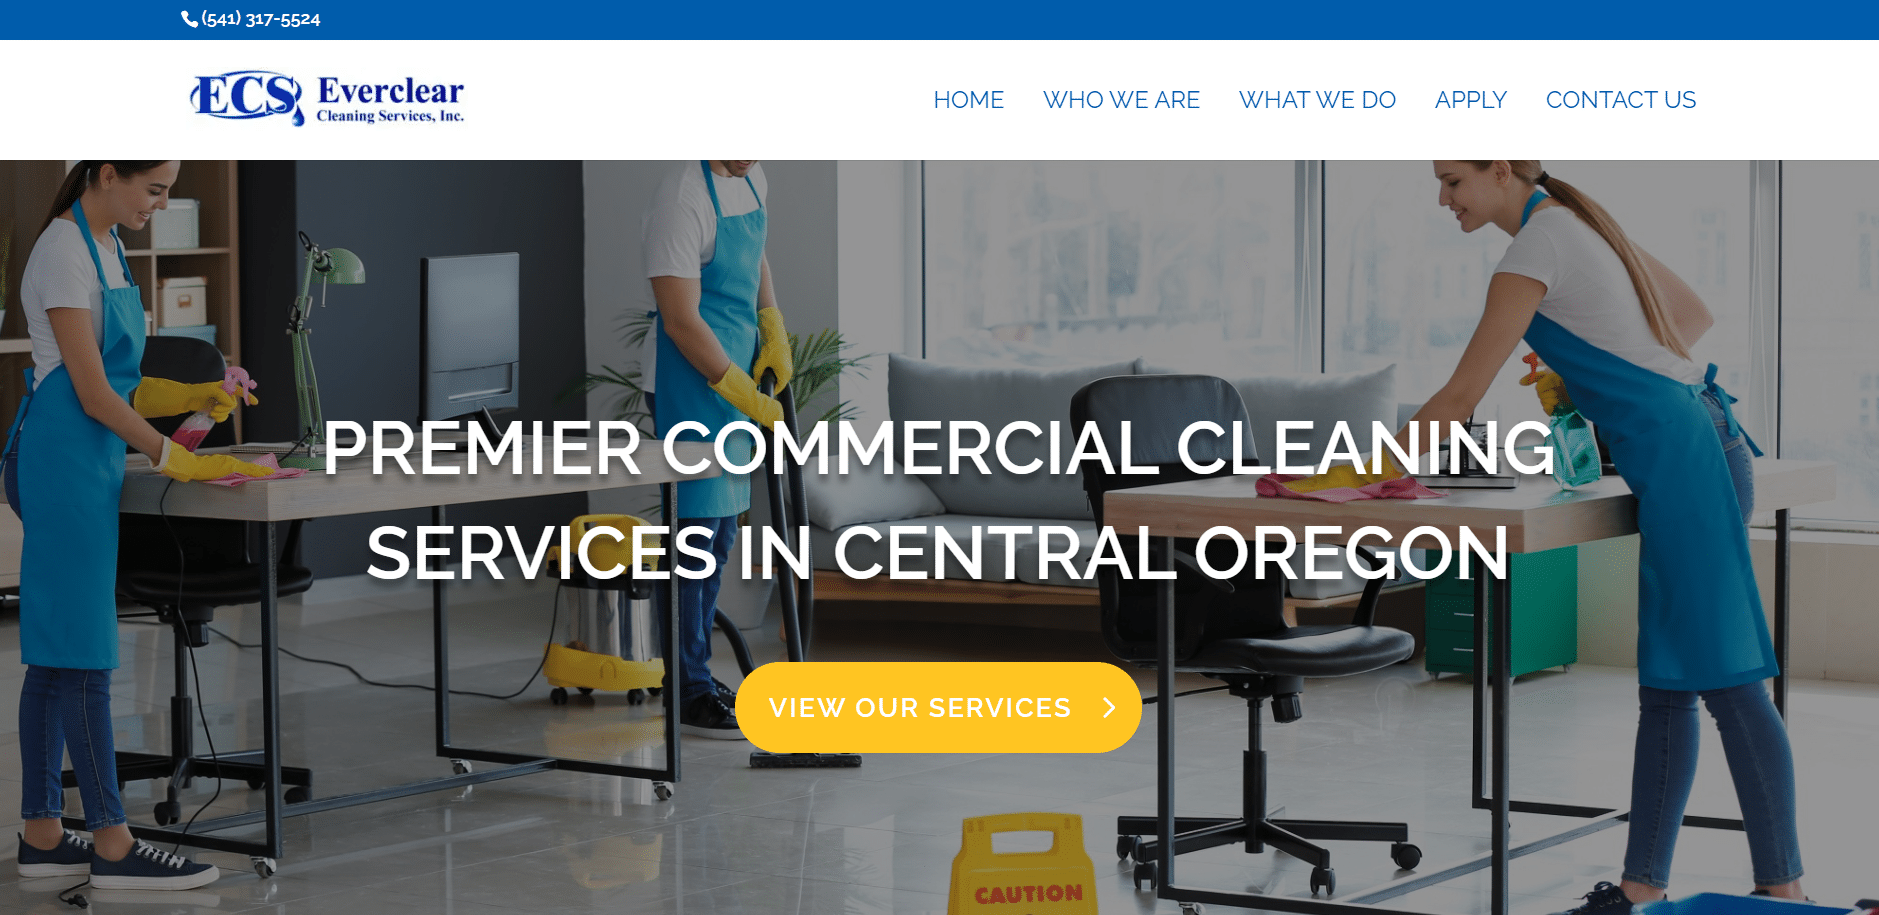 everclear cleaning services